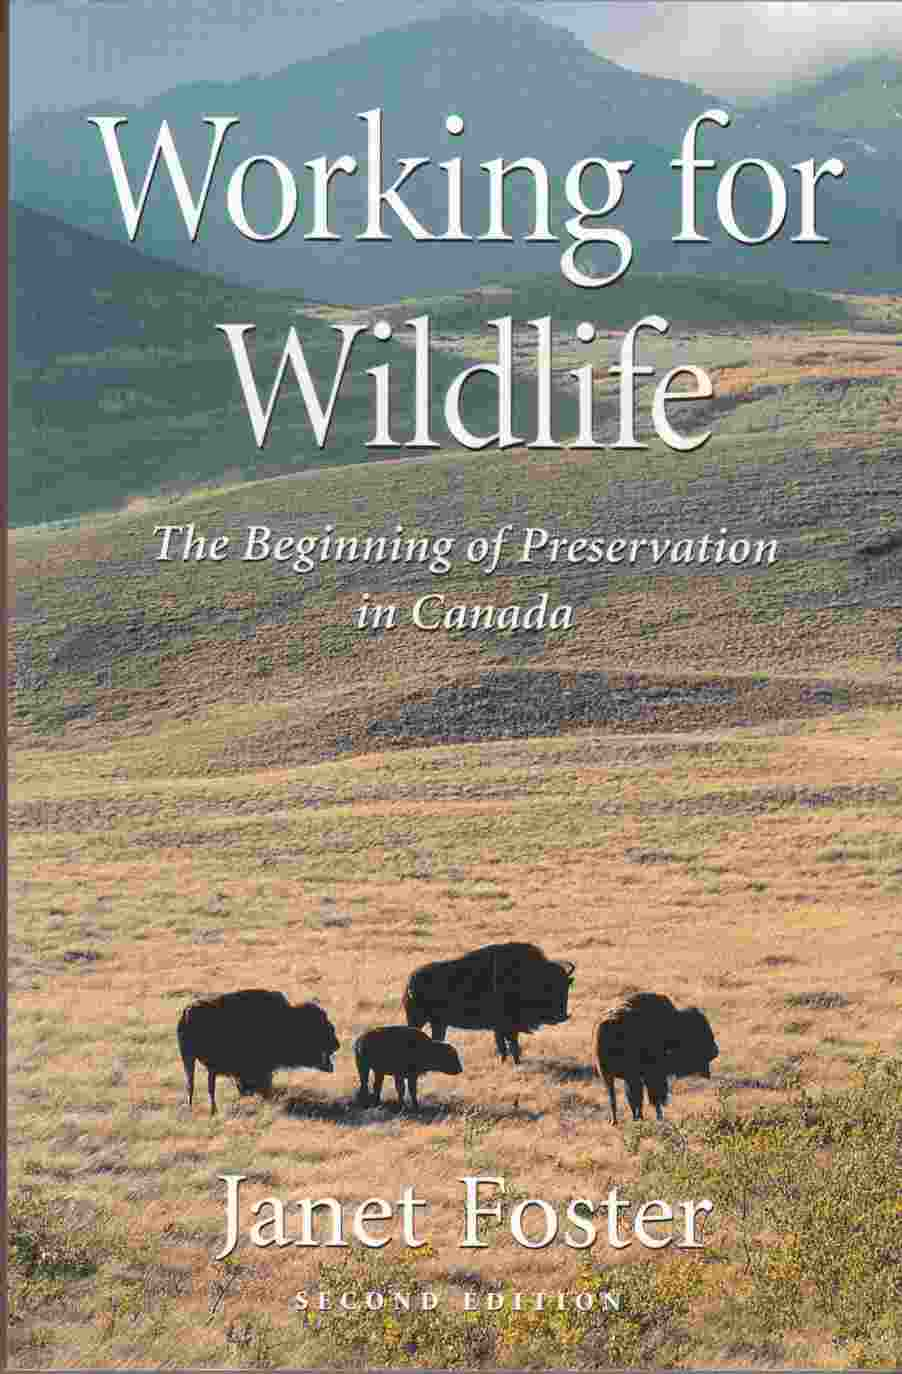 Image for Working for Wildlife The Beginning of Preservation in Canada, Second Edition